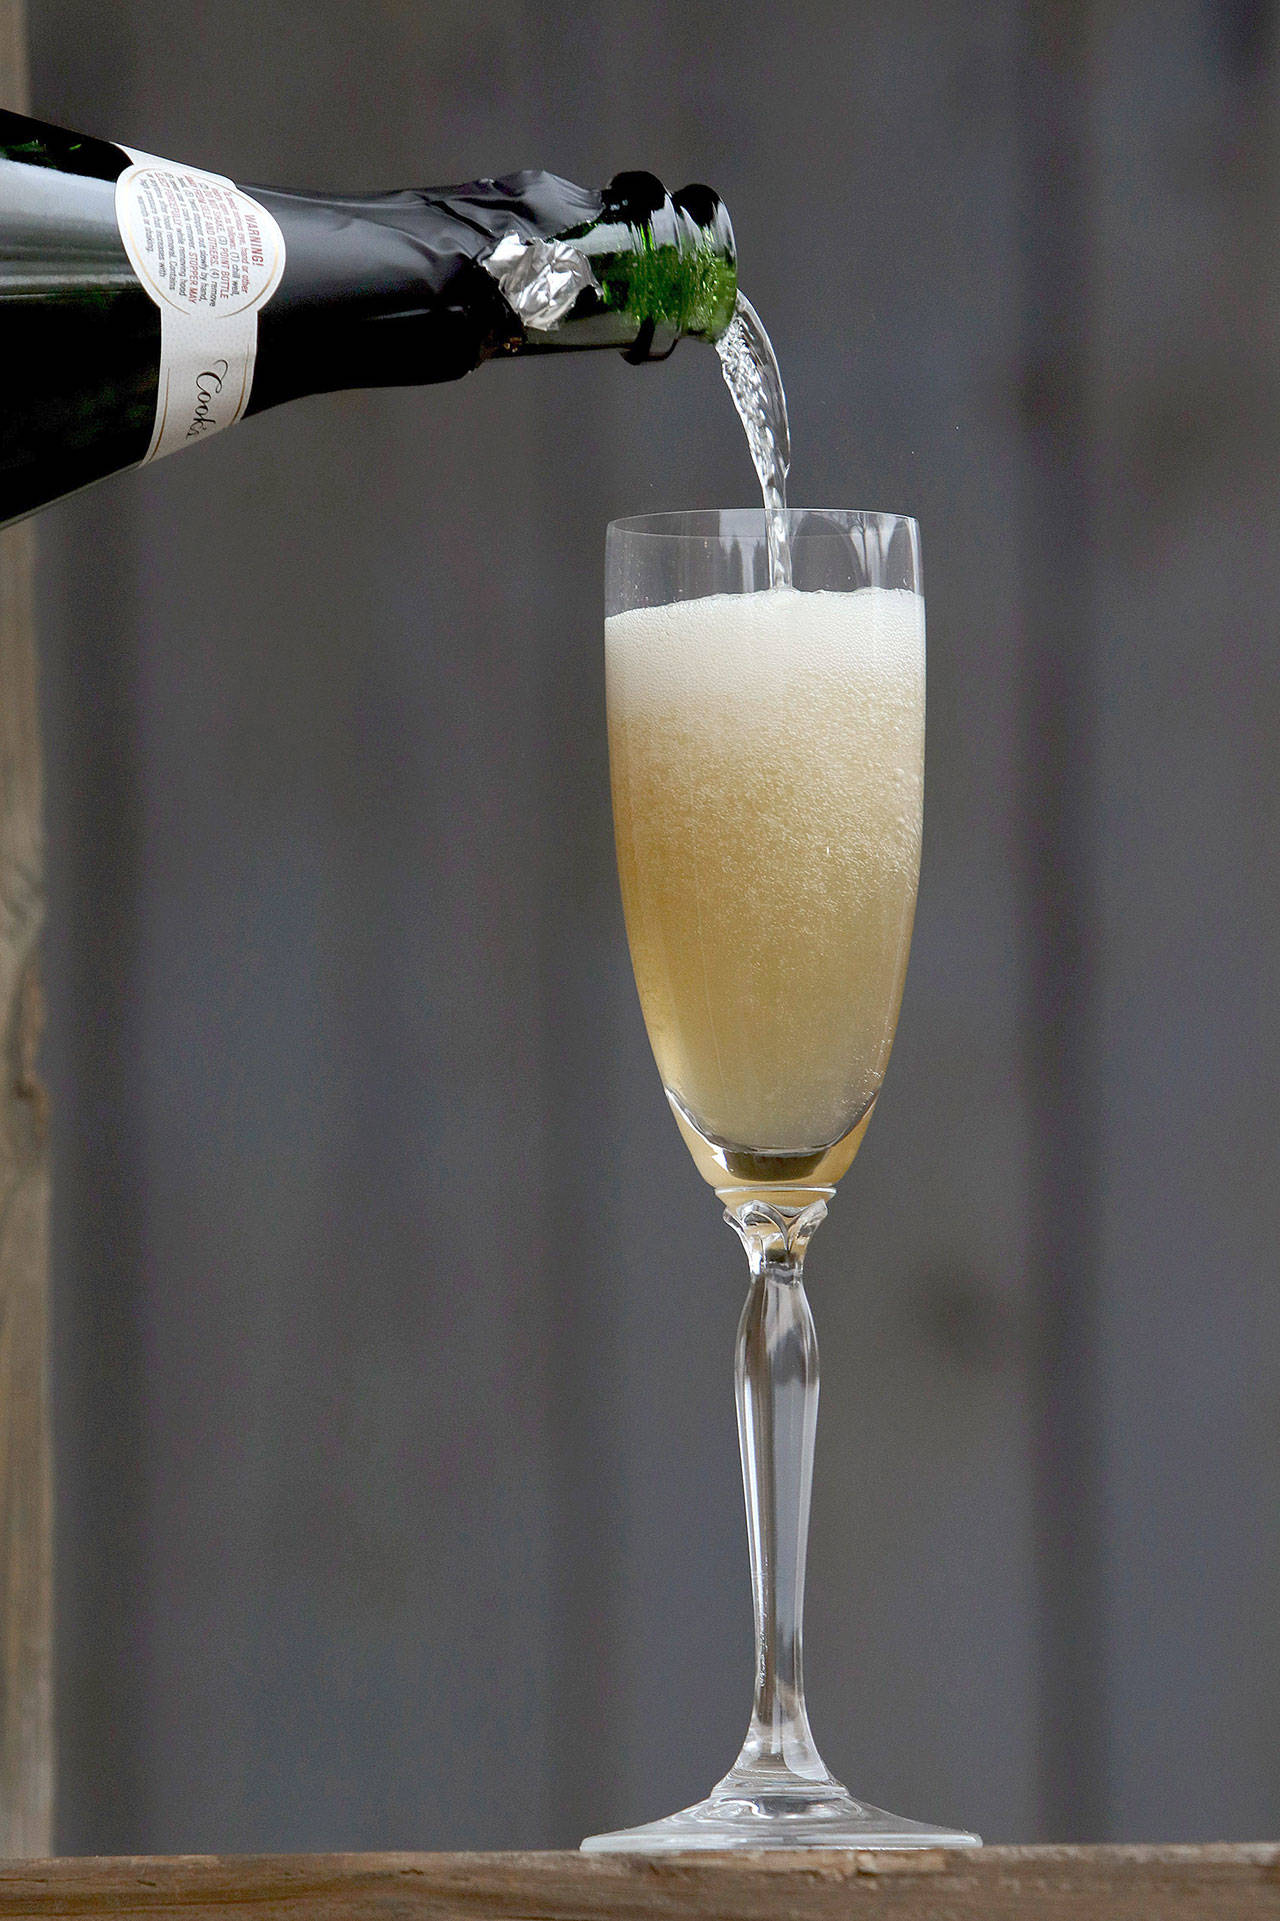 The Cognac French 75 mixes brandy and sparkling wine. (Hillary Levin / St. Louis Post-Dispatch)